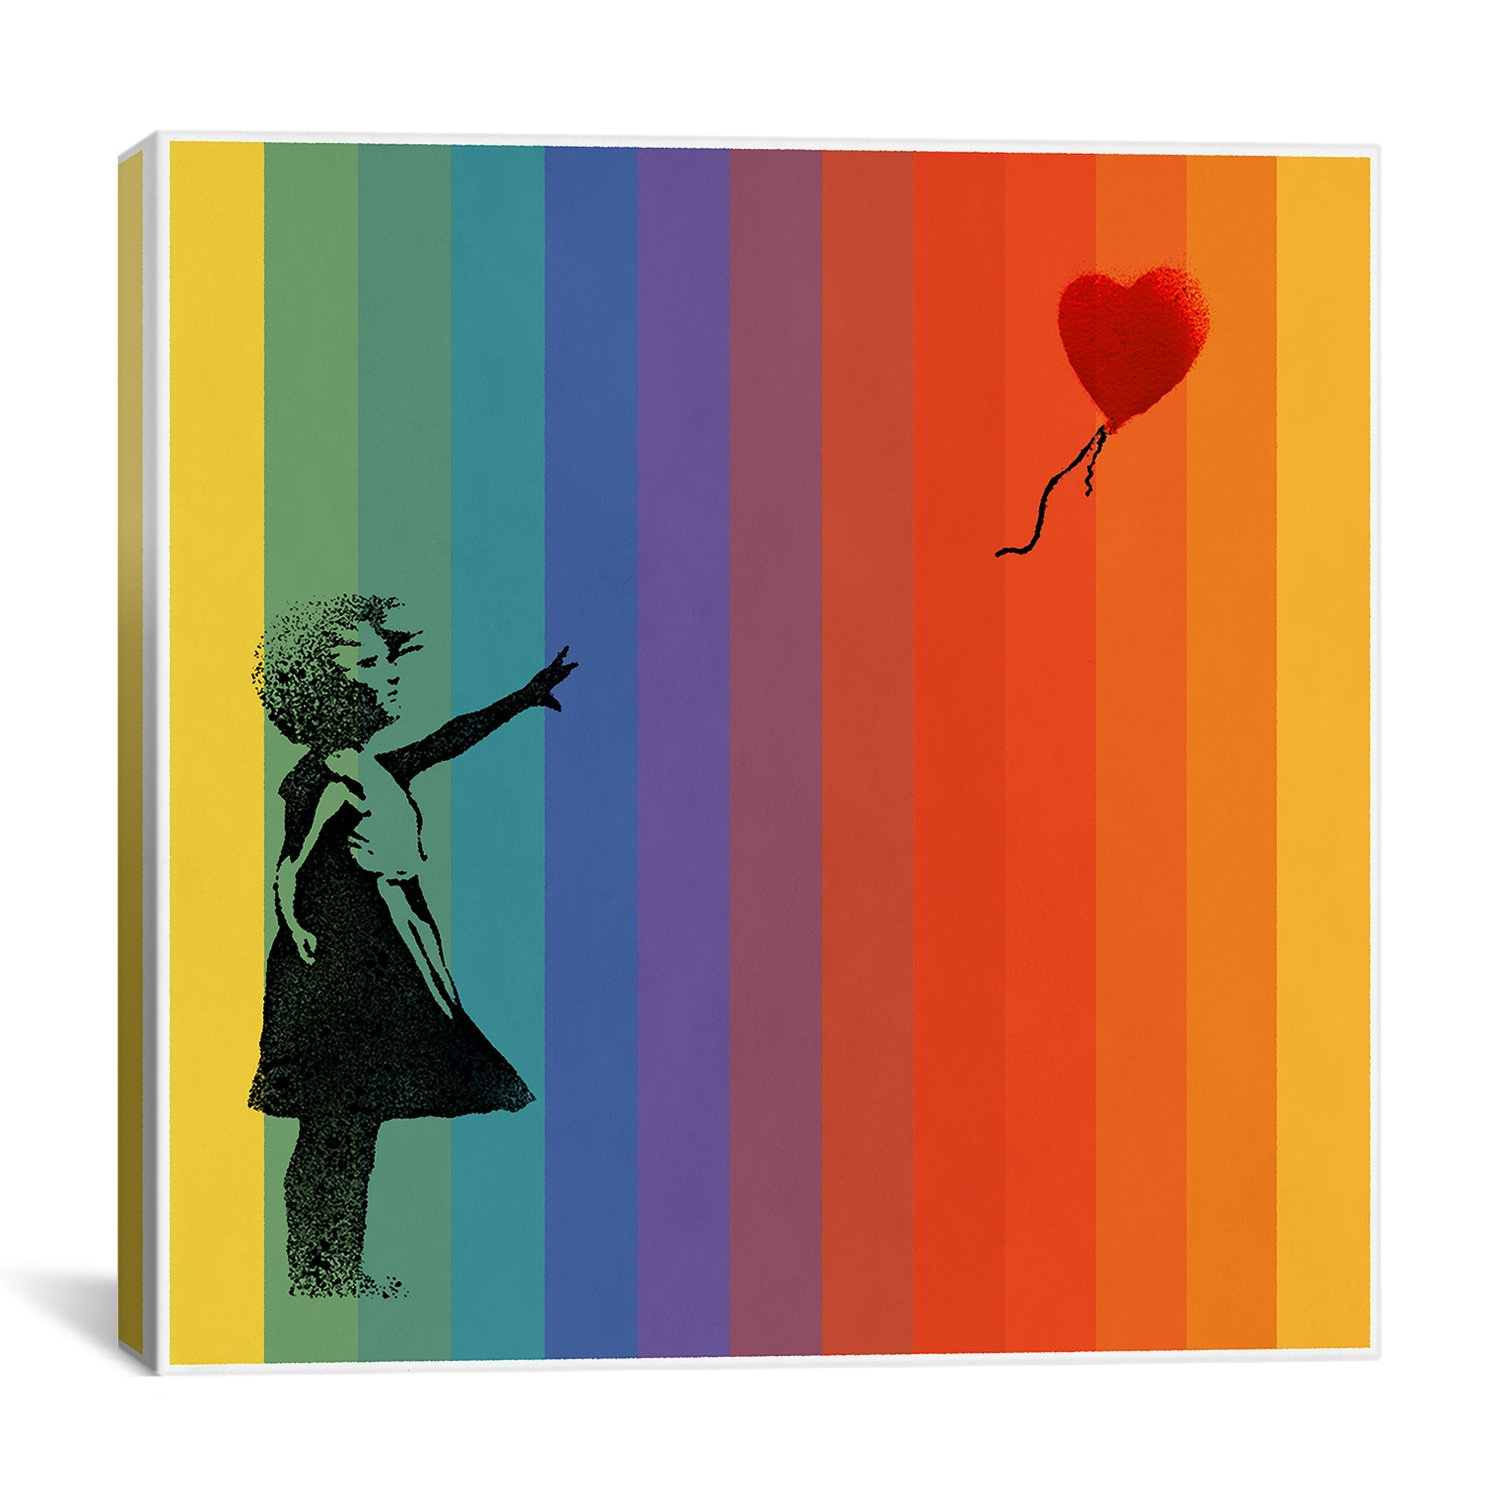 iCanvasART 2017D Girl with Balloon Rainbow Bars Canvas Print by Banksy, 37 by 37-Inch, 0.75-Inch Deep